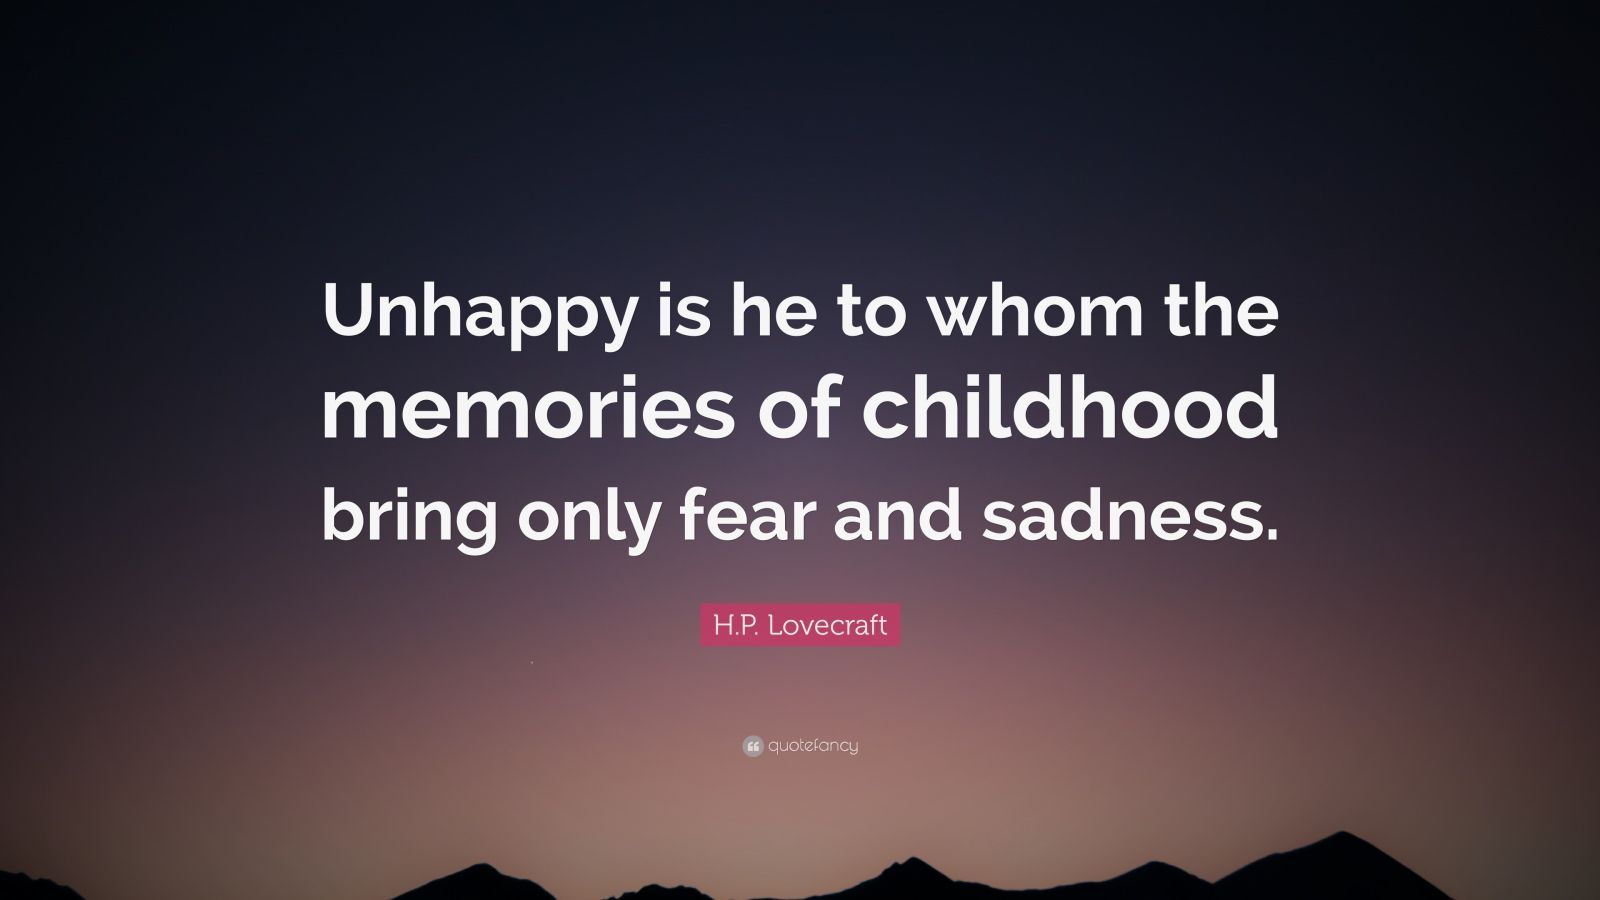 """H.P. Lovecraft Quote: """"Unhappy is he to whom the memories of childhood bring only fear and sadness."""""""